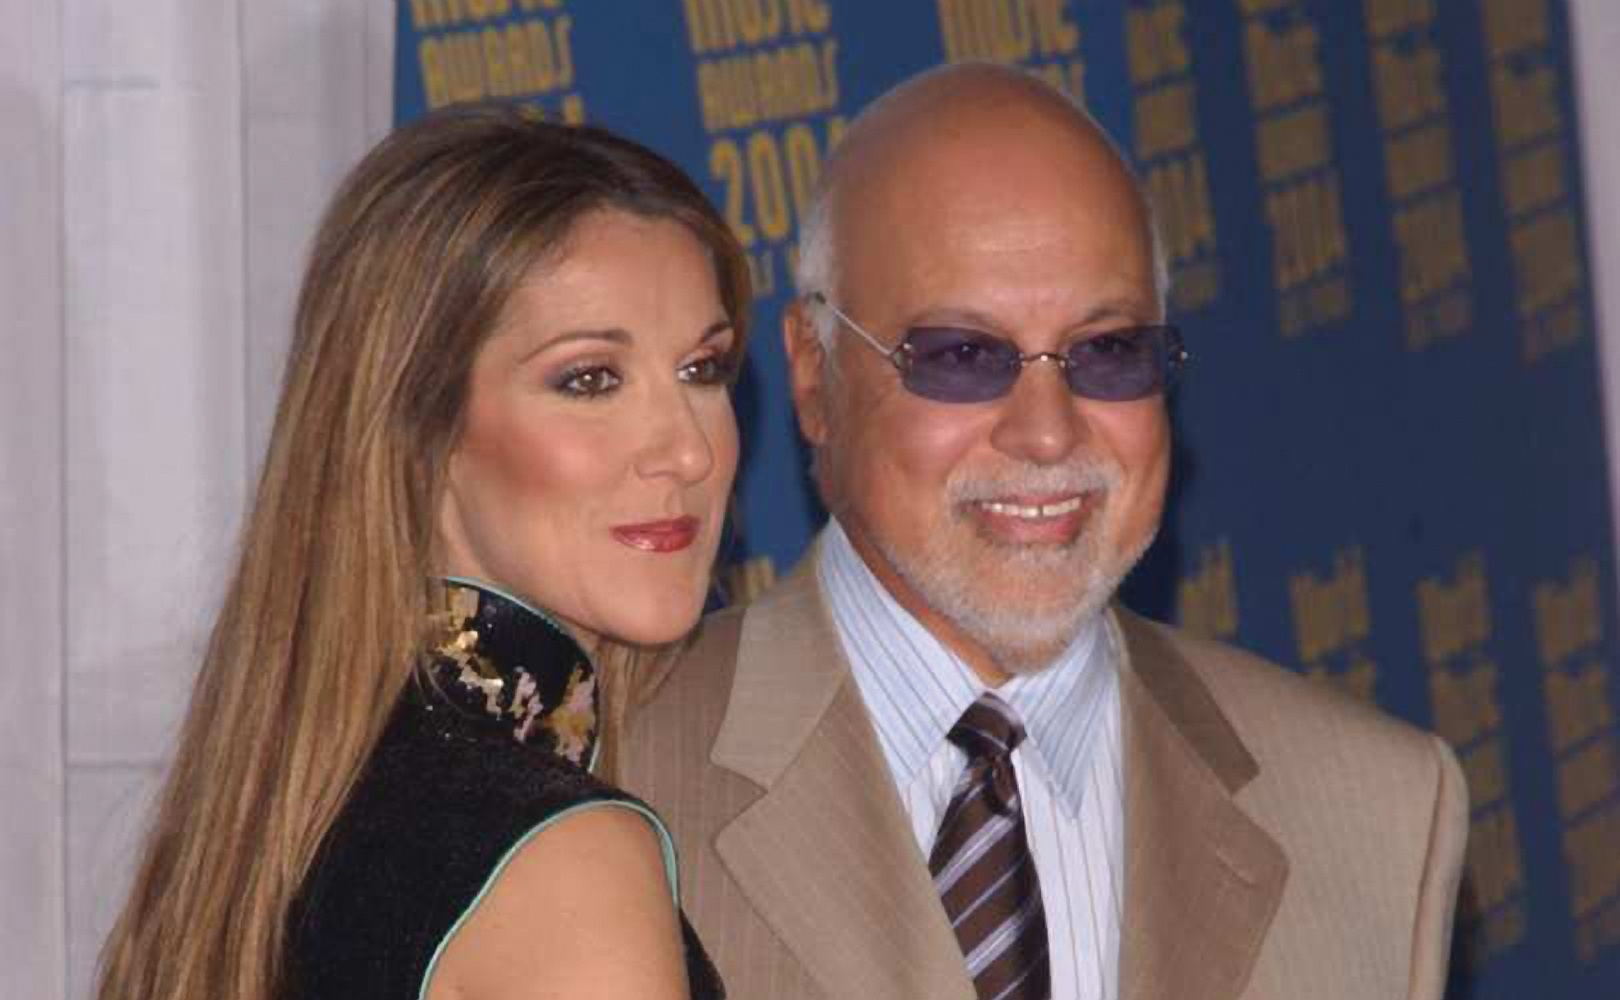 Celine Dion with her late husband and former manager, Rene Angélil (Photo via LifeSiteNews)